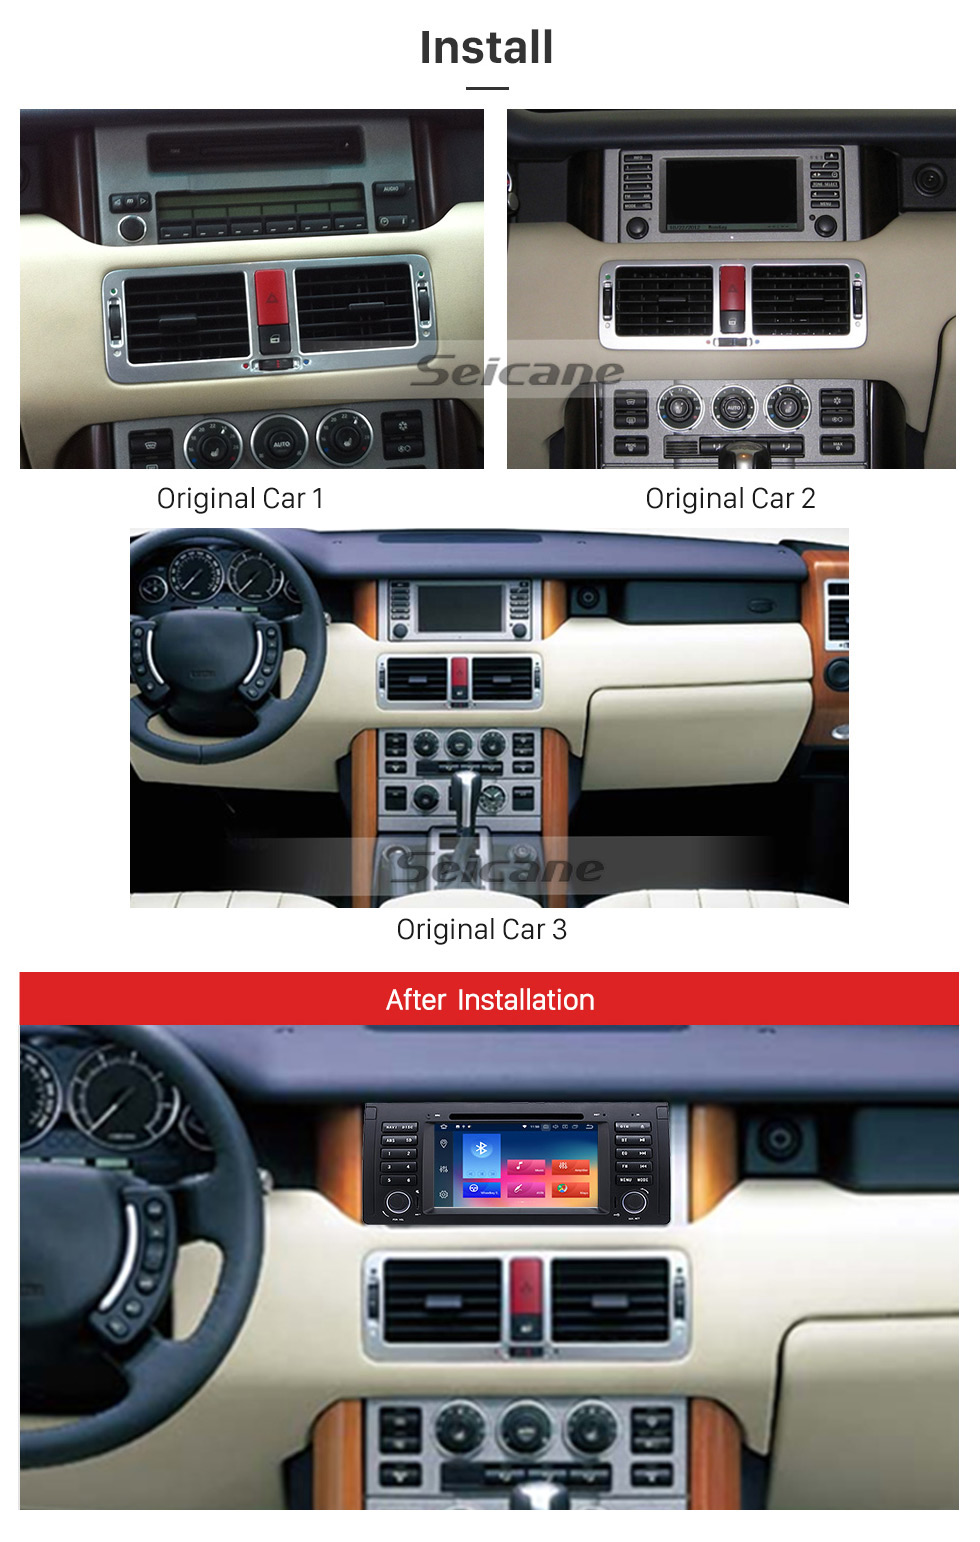 Seicane Android 8.0 Car Stereo DVD GPS System for 2002 2003 2004 Range Rover with Bluetooth Radio Tuner 3G WiFi Mirror Link OBD2 Rearview Camera DVR